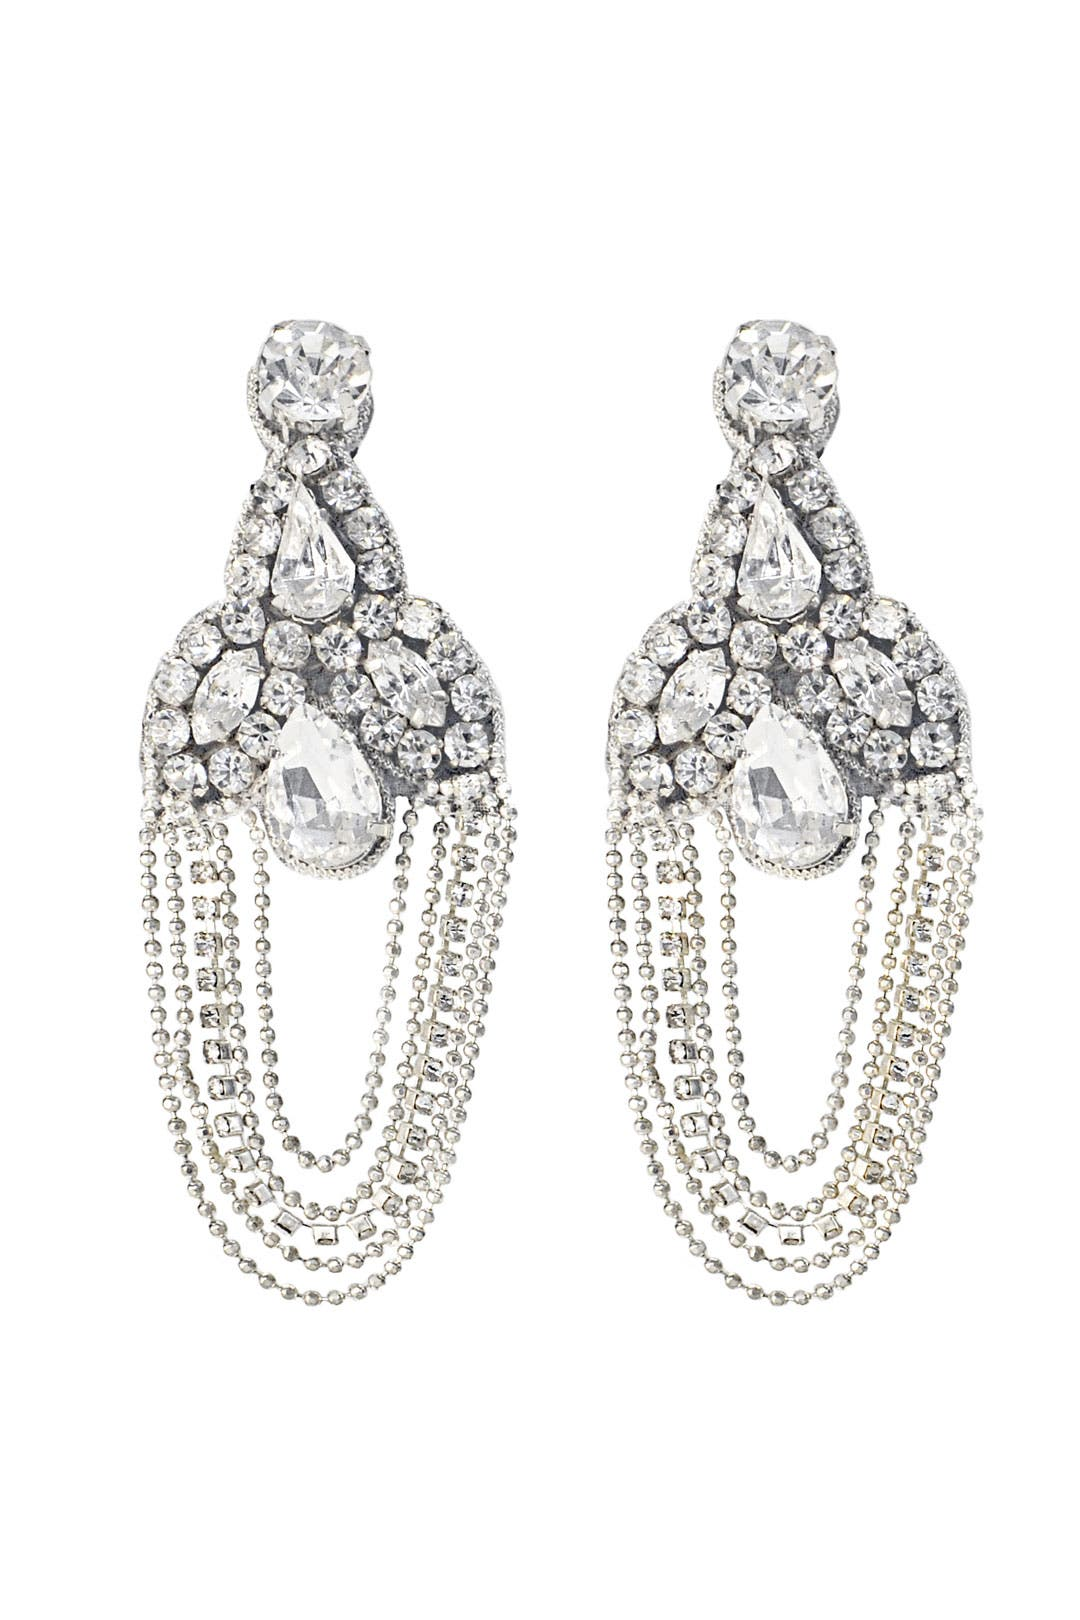 Crystal Palace Chandelier Earrings by Deepa Gurnani